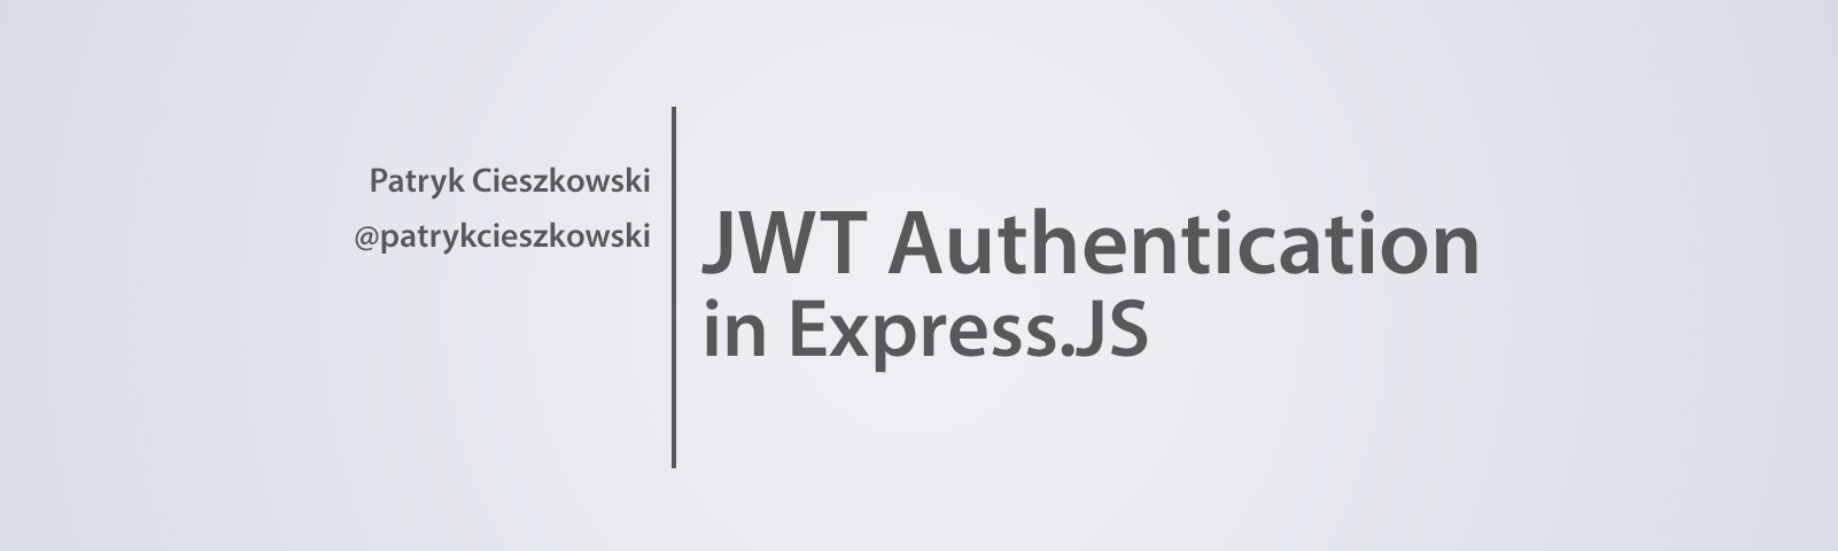 JWT Authentication in Express js - Patryk Cieszkowski - Medium